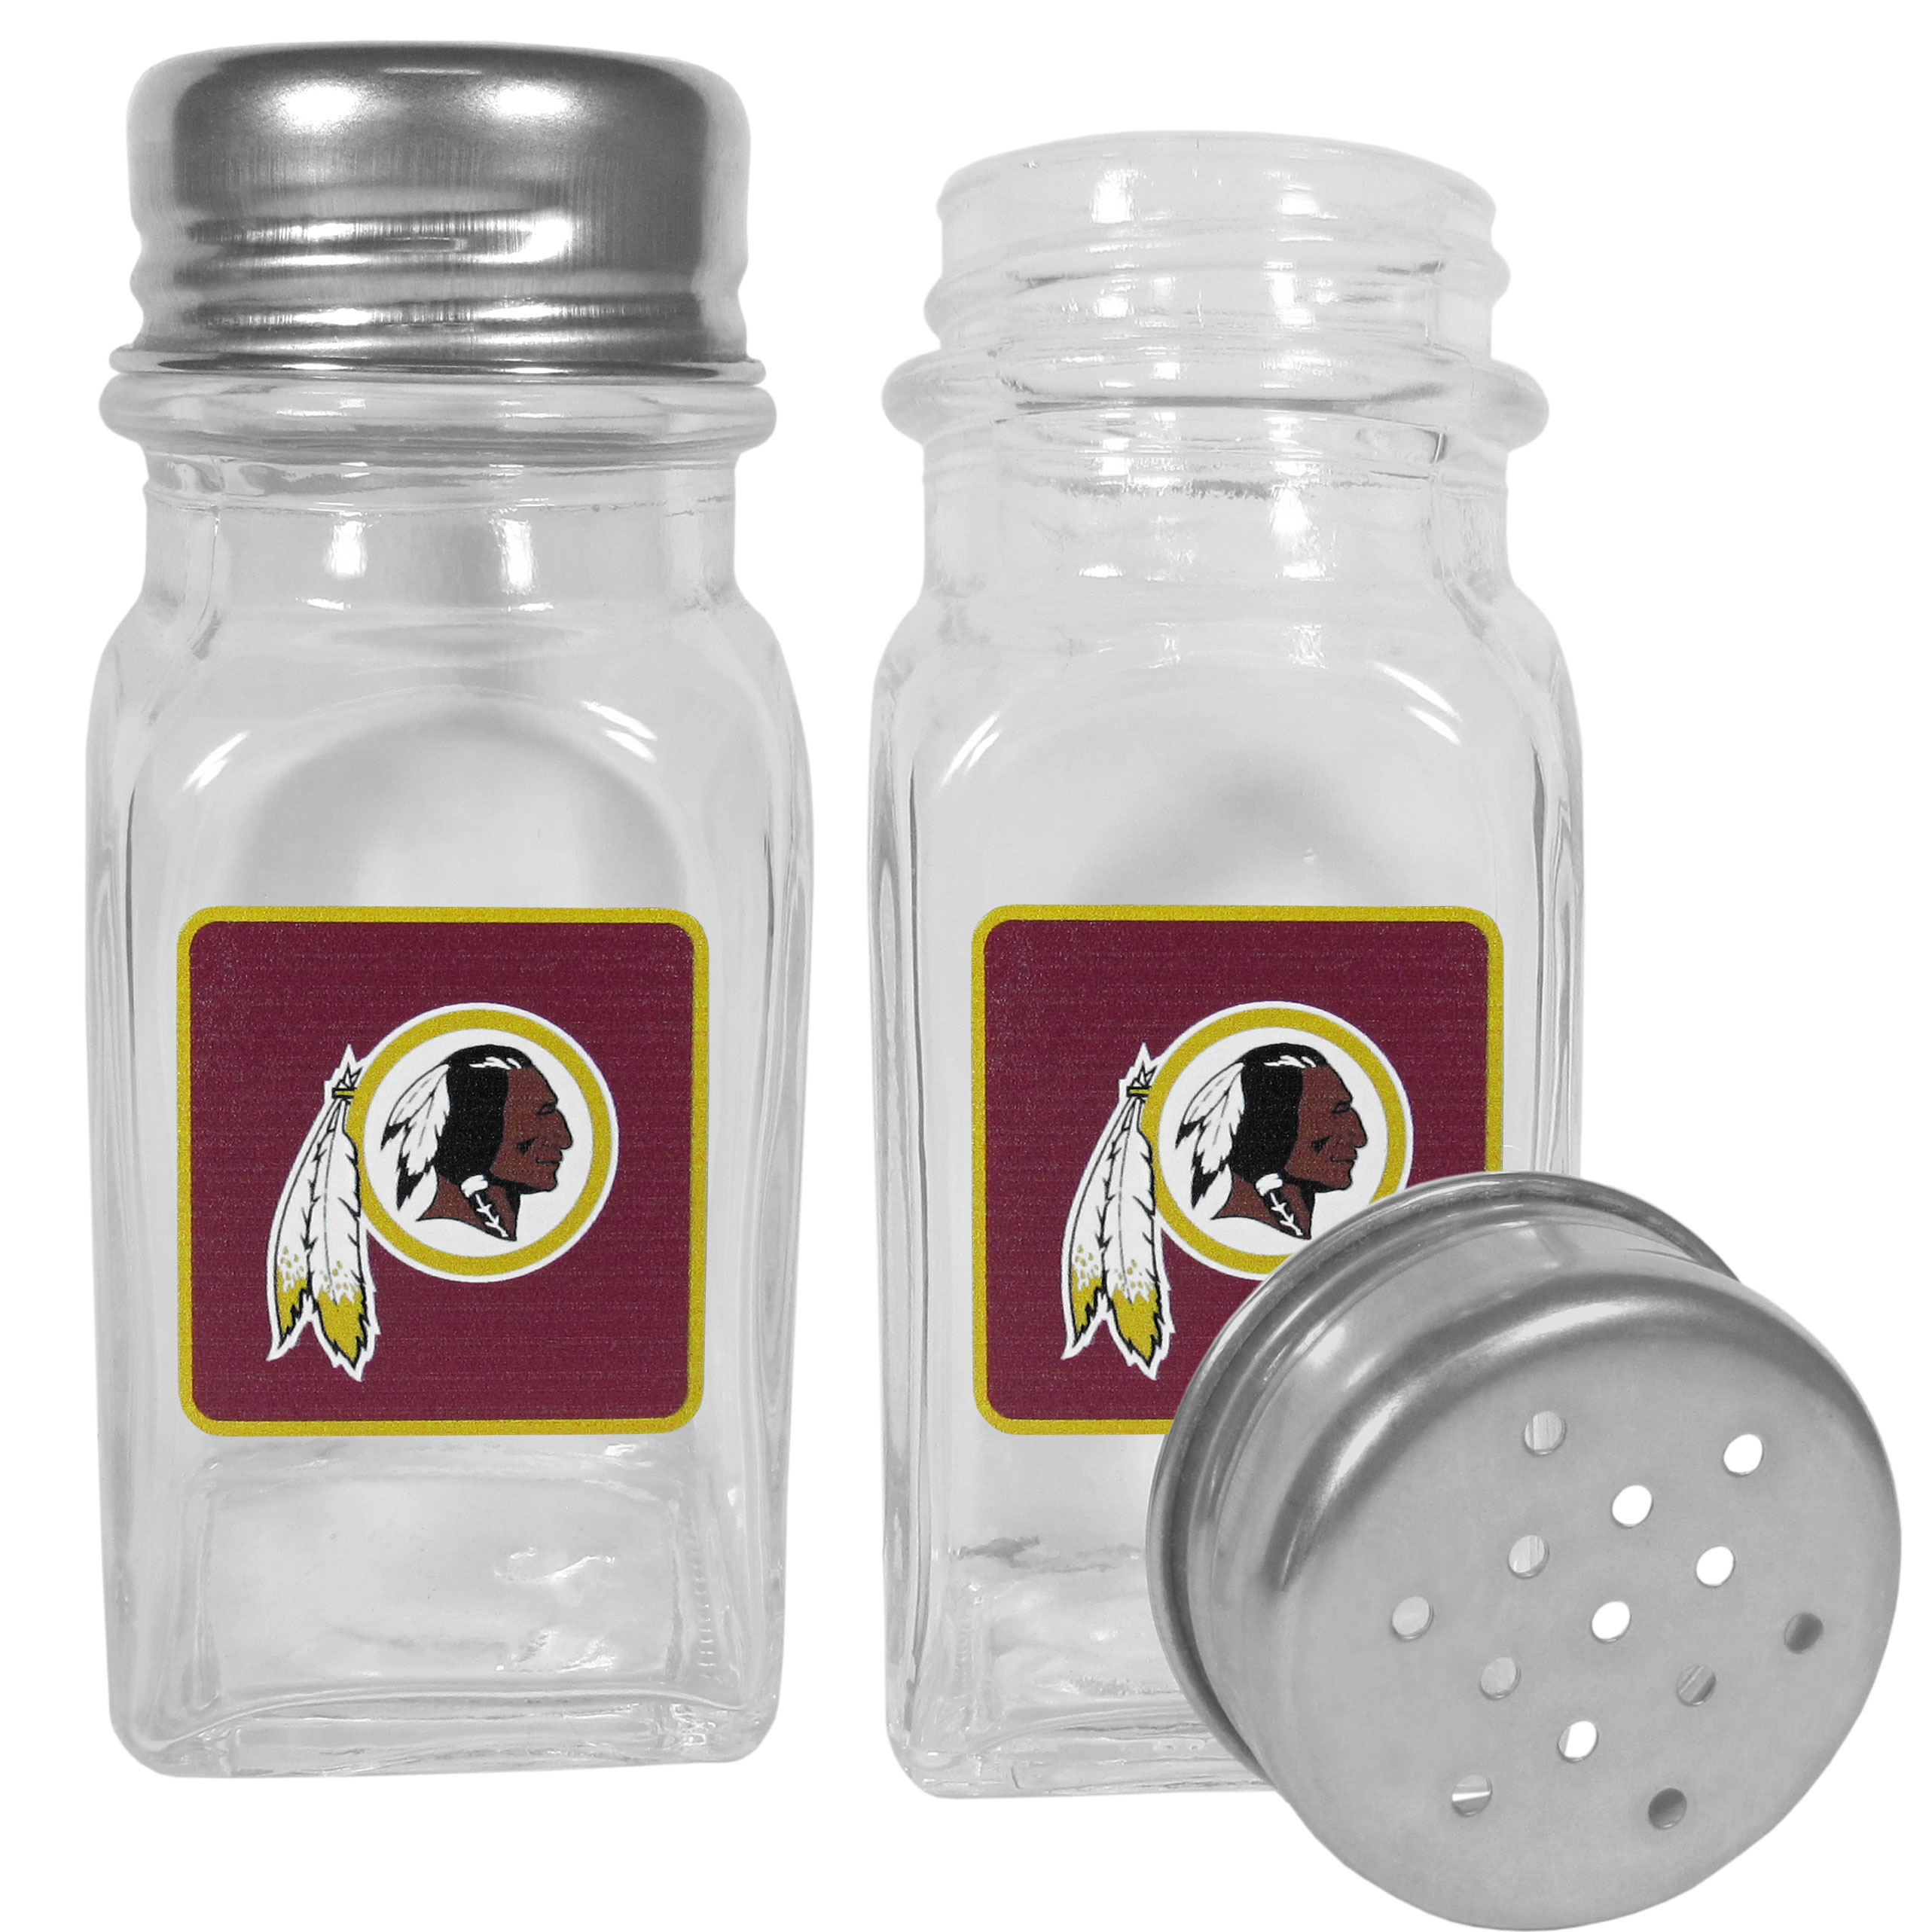 Washington Redskins Graphics Salt & Pepper Shaker - No tailgate party is complete without your Washington Redskins salt & pepper shakers featuring bright team logos. The diner replica salt and pepper shakers are glass with screw top lids. These team shakers are a great grill accessory whether you are barbecuing on the patio, picnicing or having a game day party.